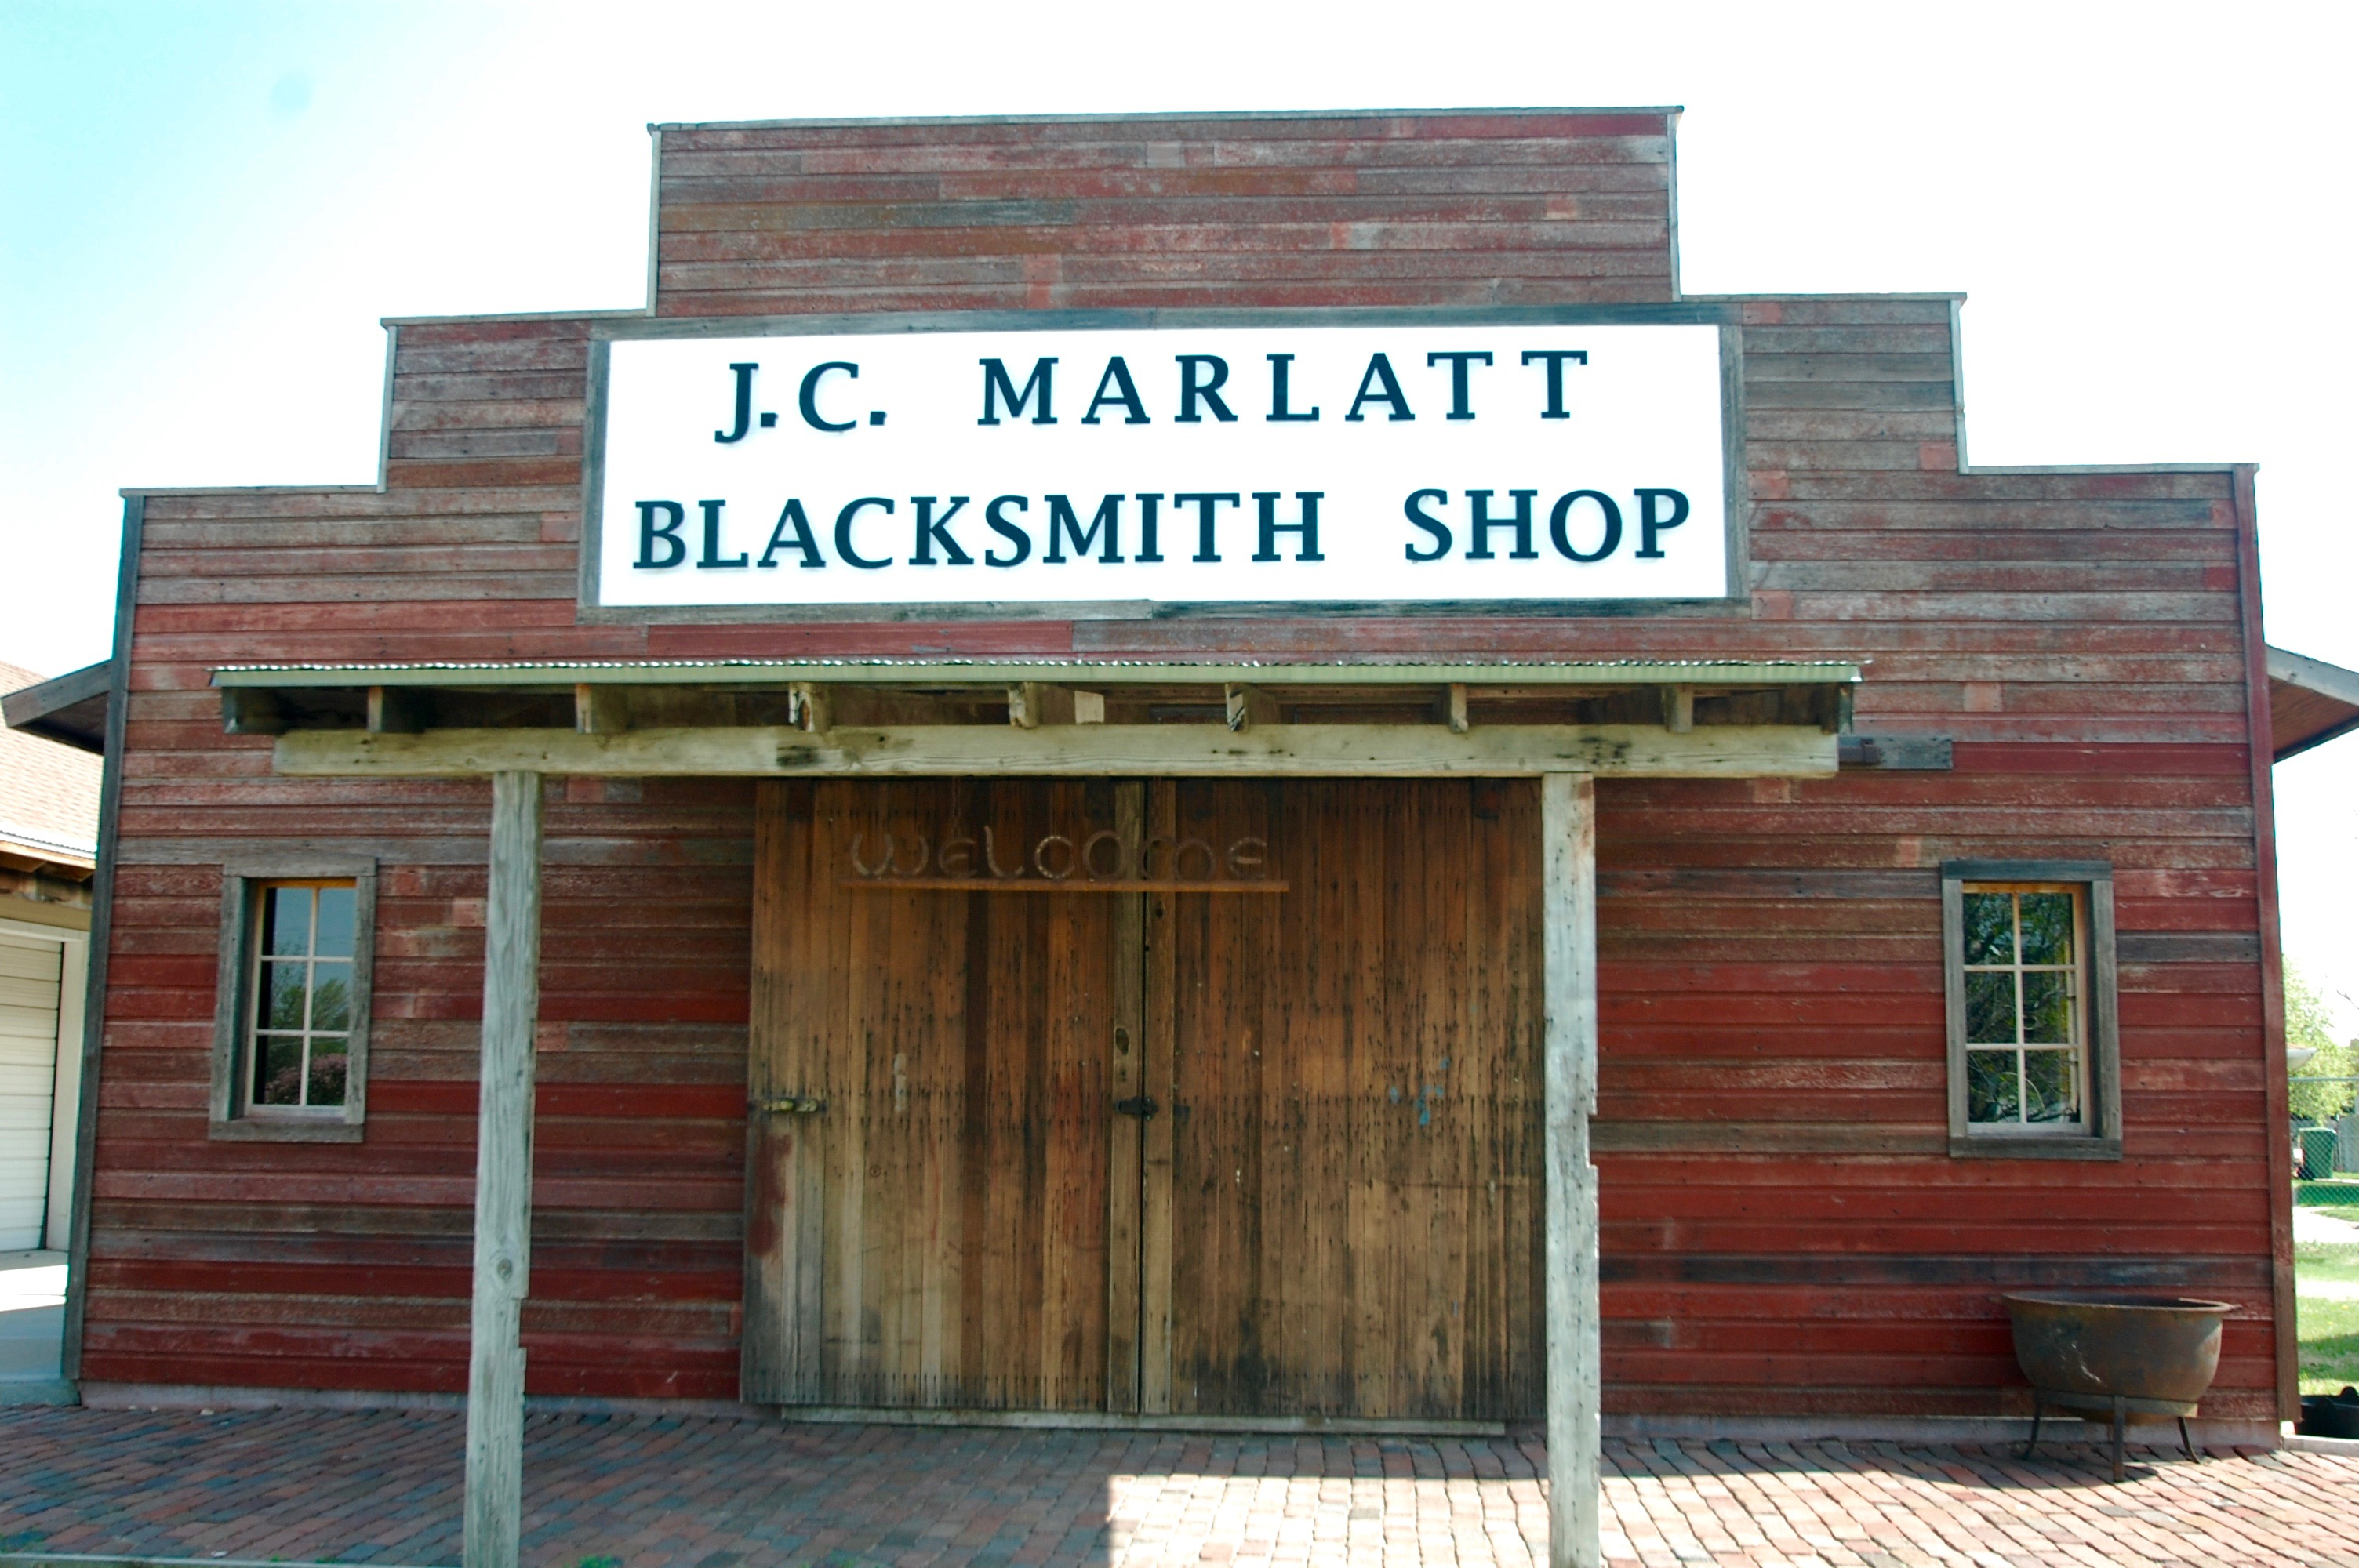 The front of the blacksmith shop.